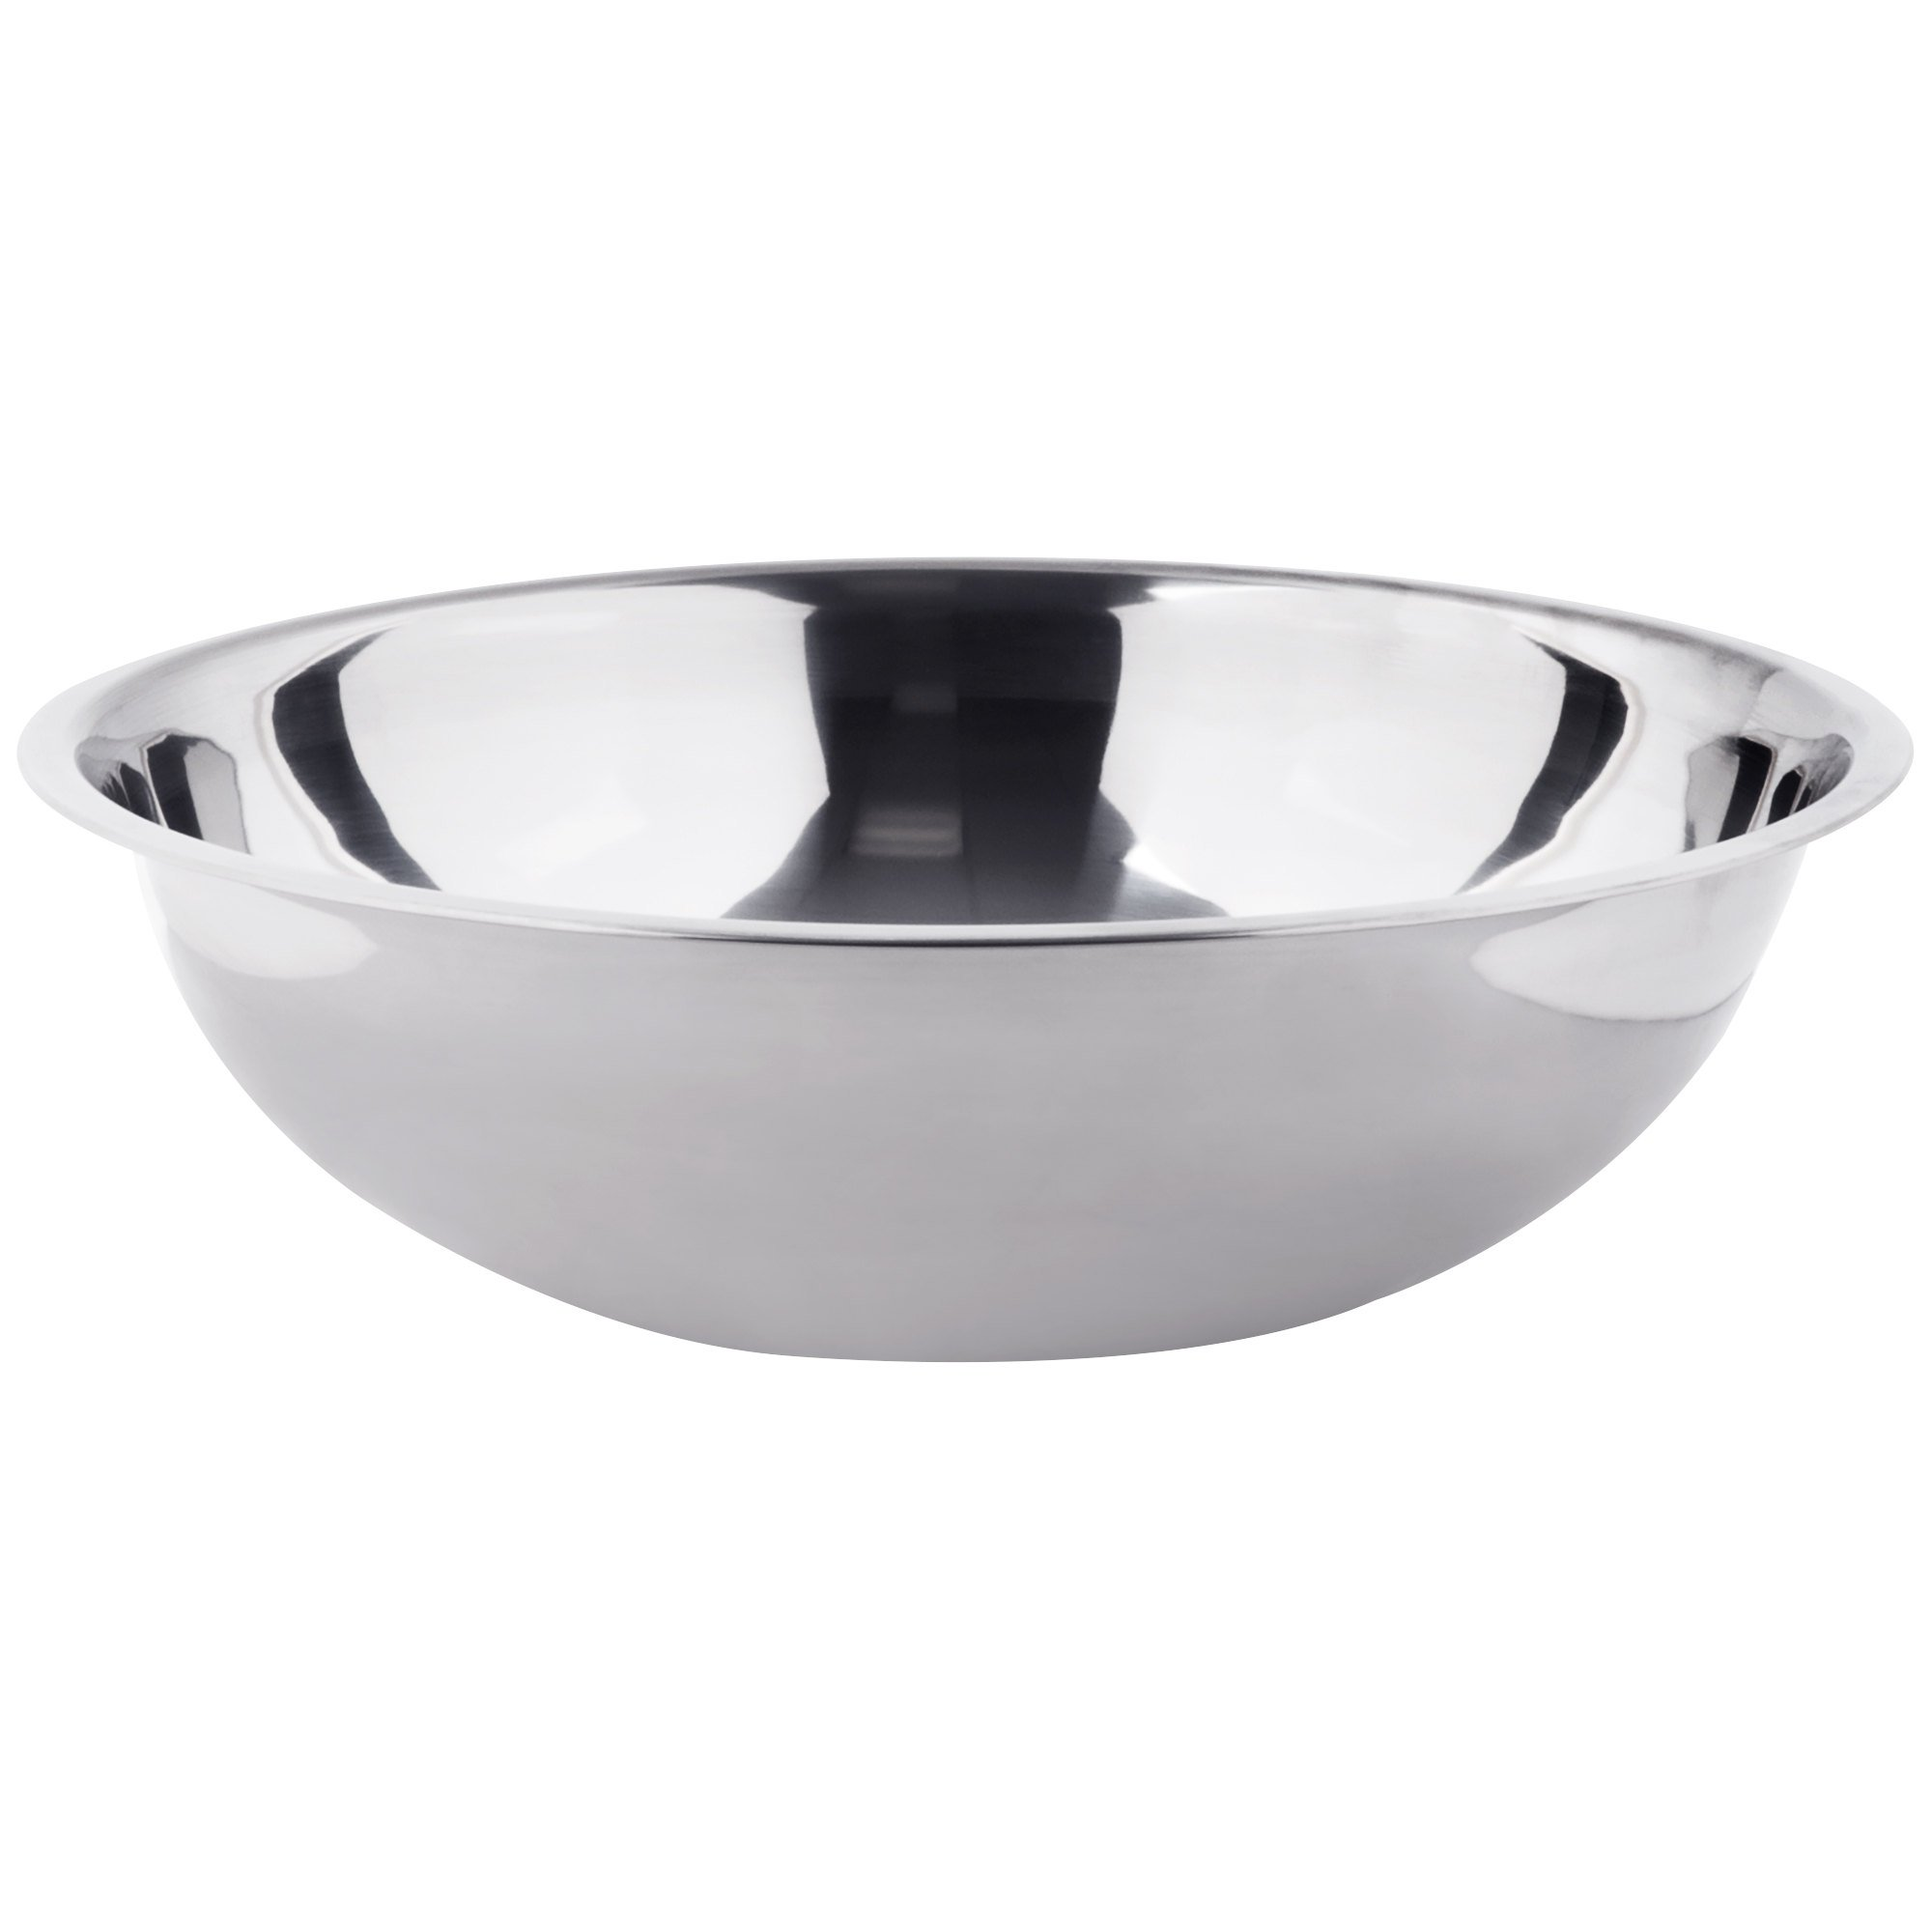 UltraSource Stainless Steel Mixing Bowl, 13 Quart by ULTRASOURCE